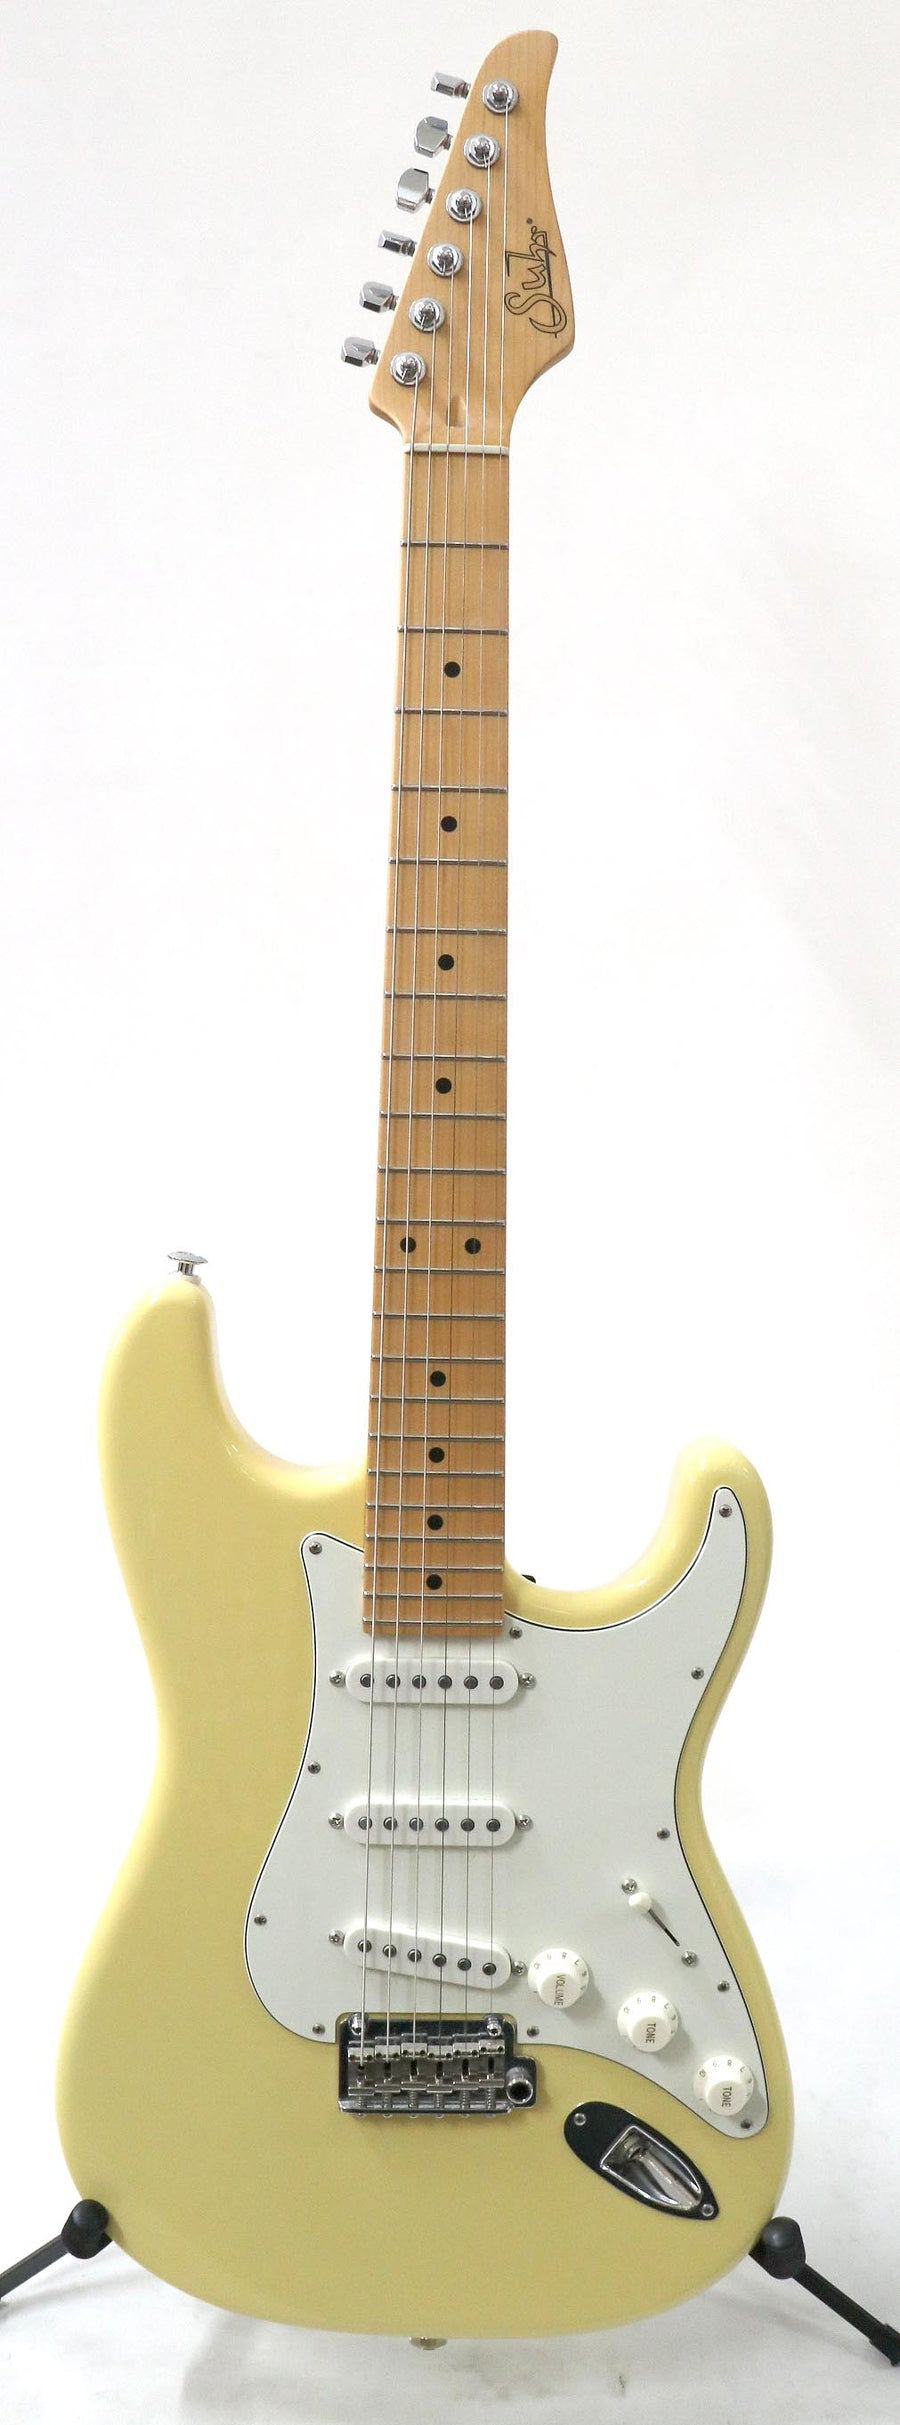 Suhr Classic S style Stratocaster